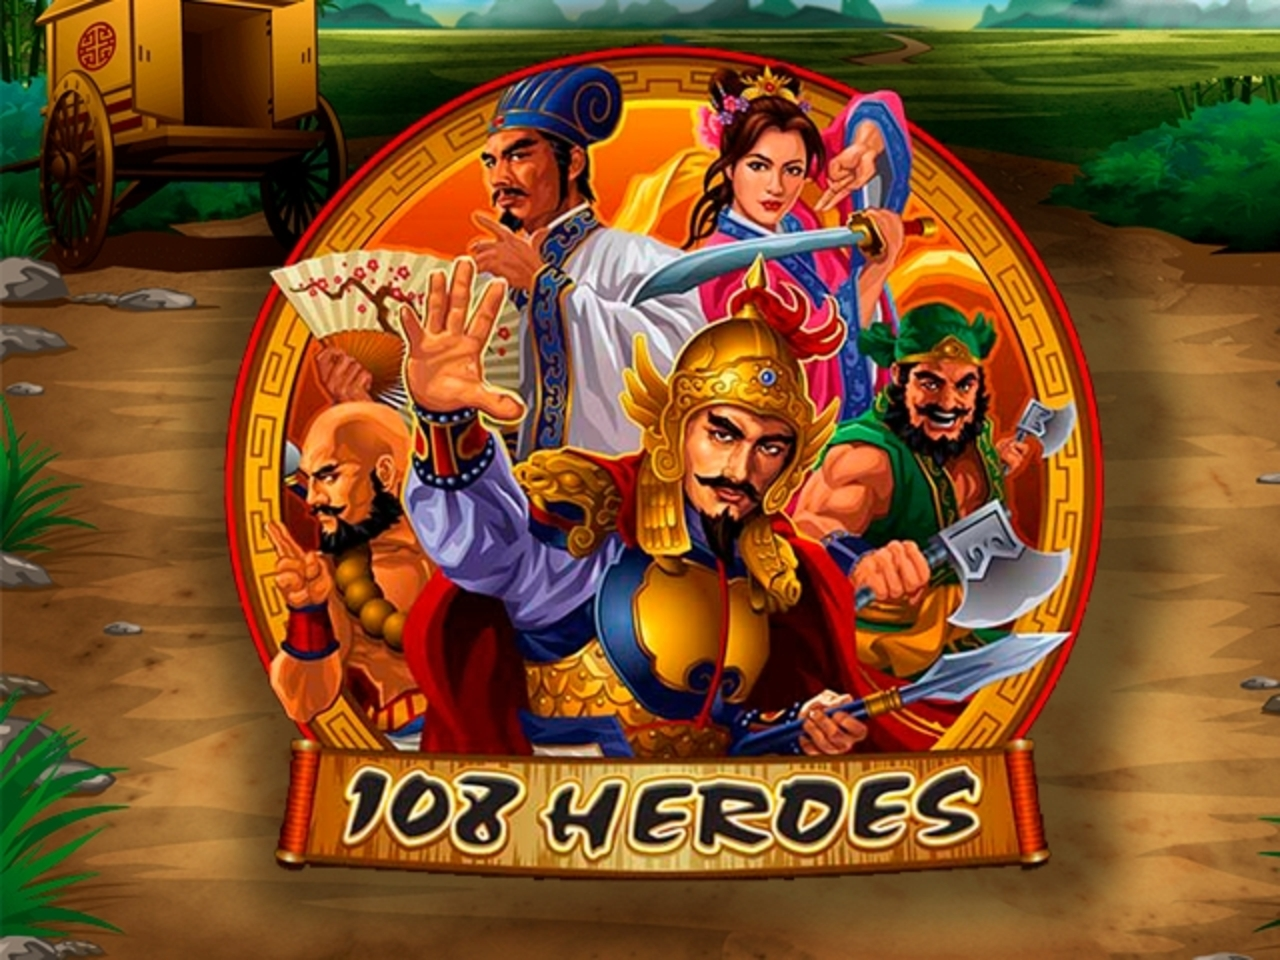 The 108 Heroes Online Slot Demo Game by MahiGaming